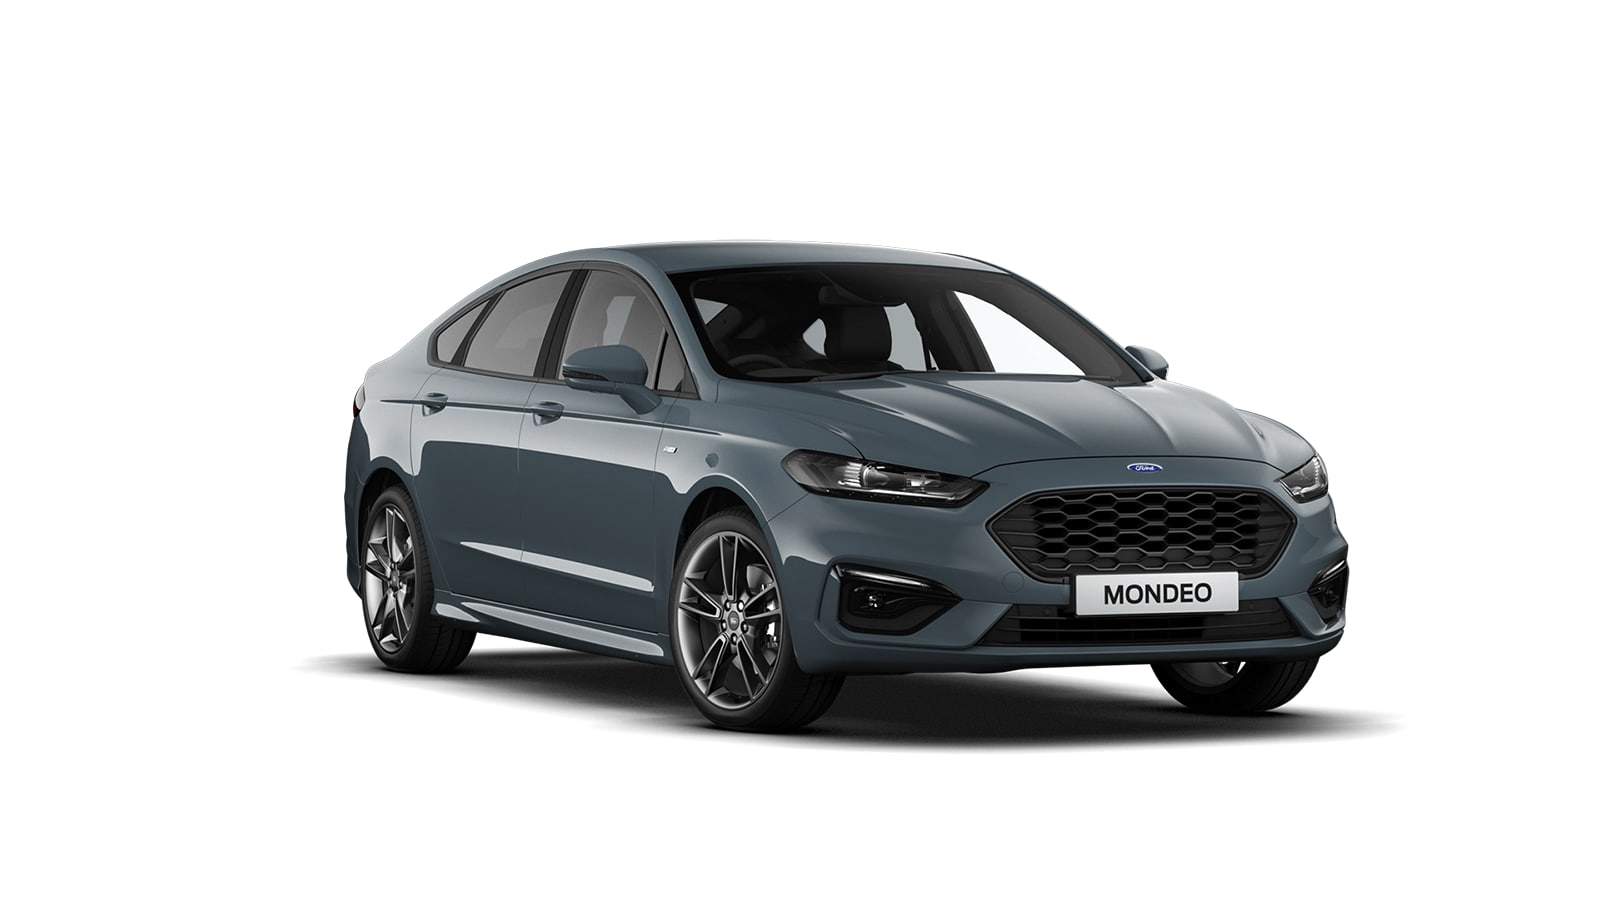 Ford Mondeo ST-Line Edition 2.0L EcoBlue 190PS at Browne & Day